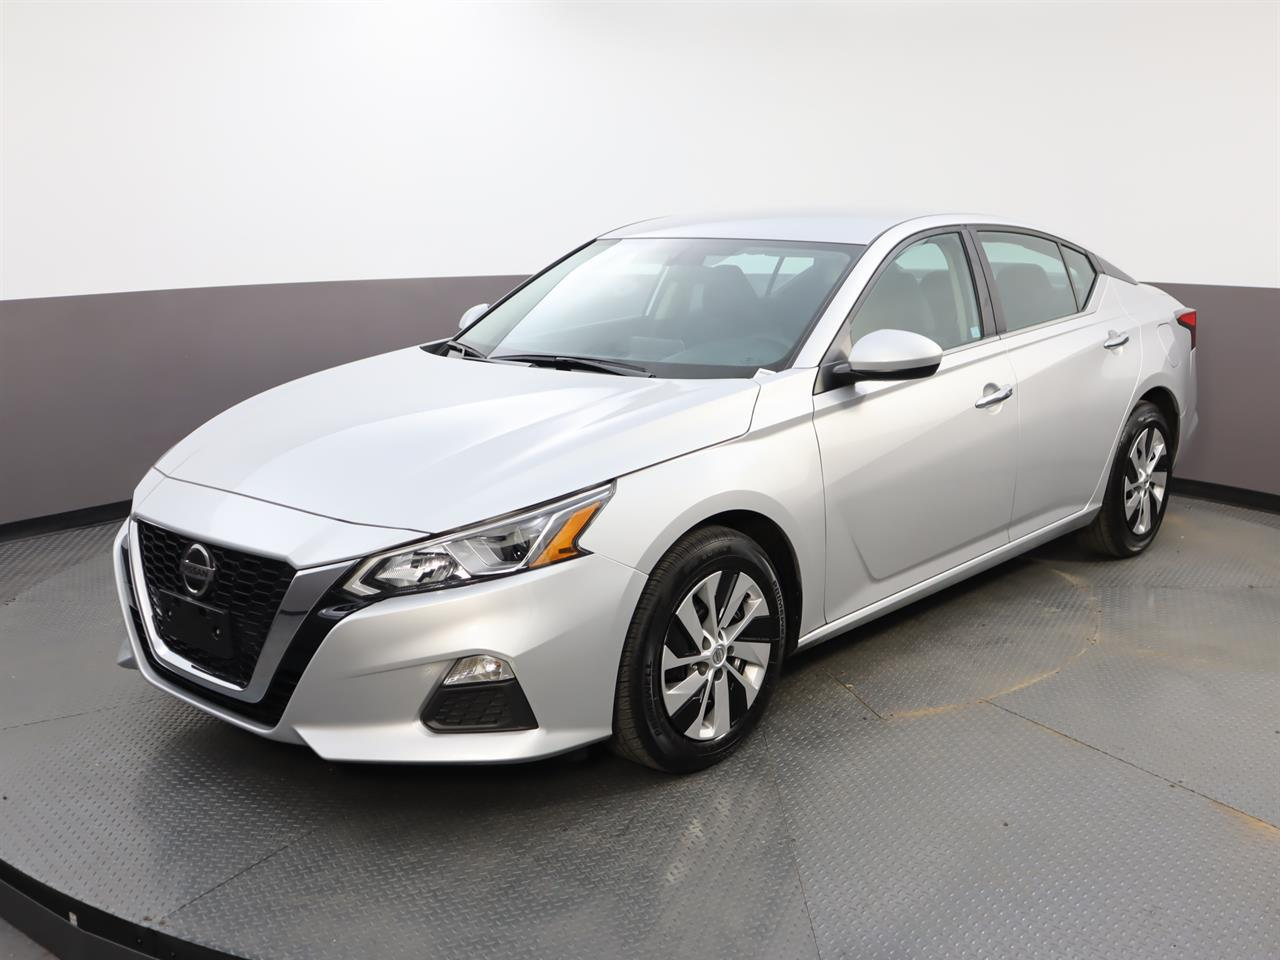 Used NISSAN ALTIMA 2020 MARGATE 2.5 S